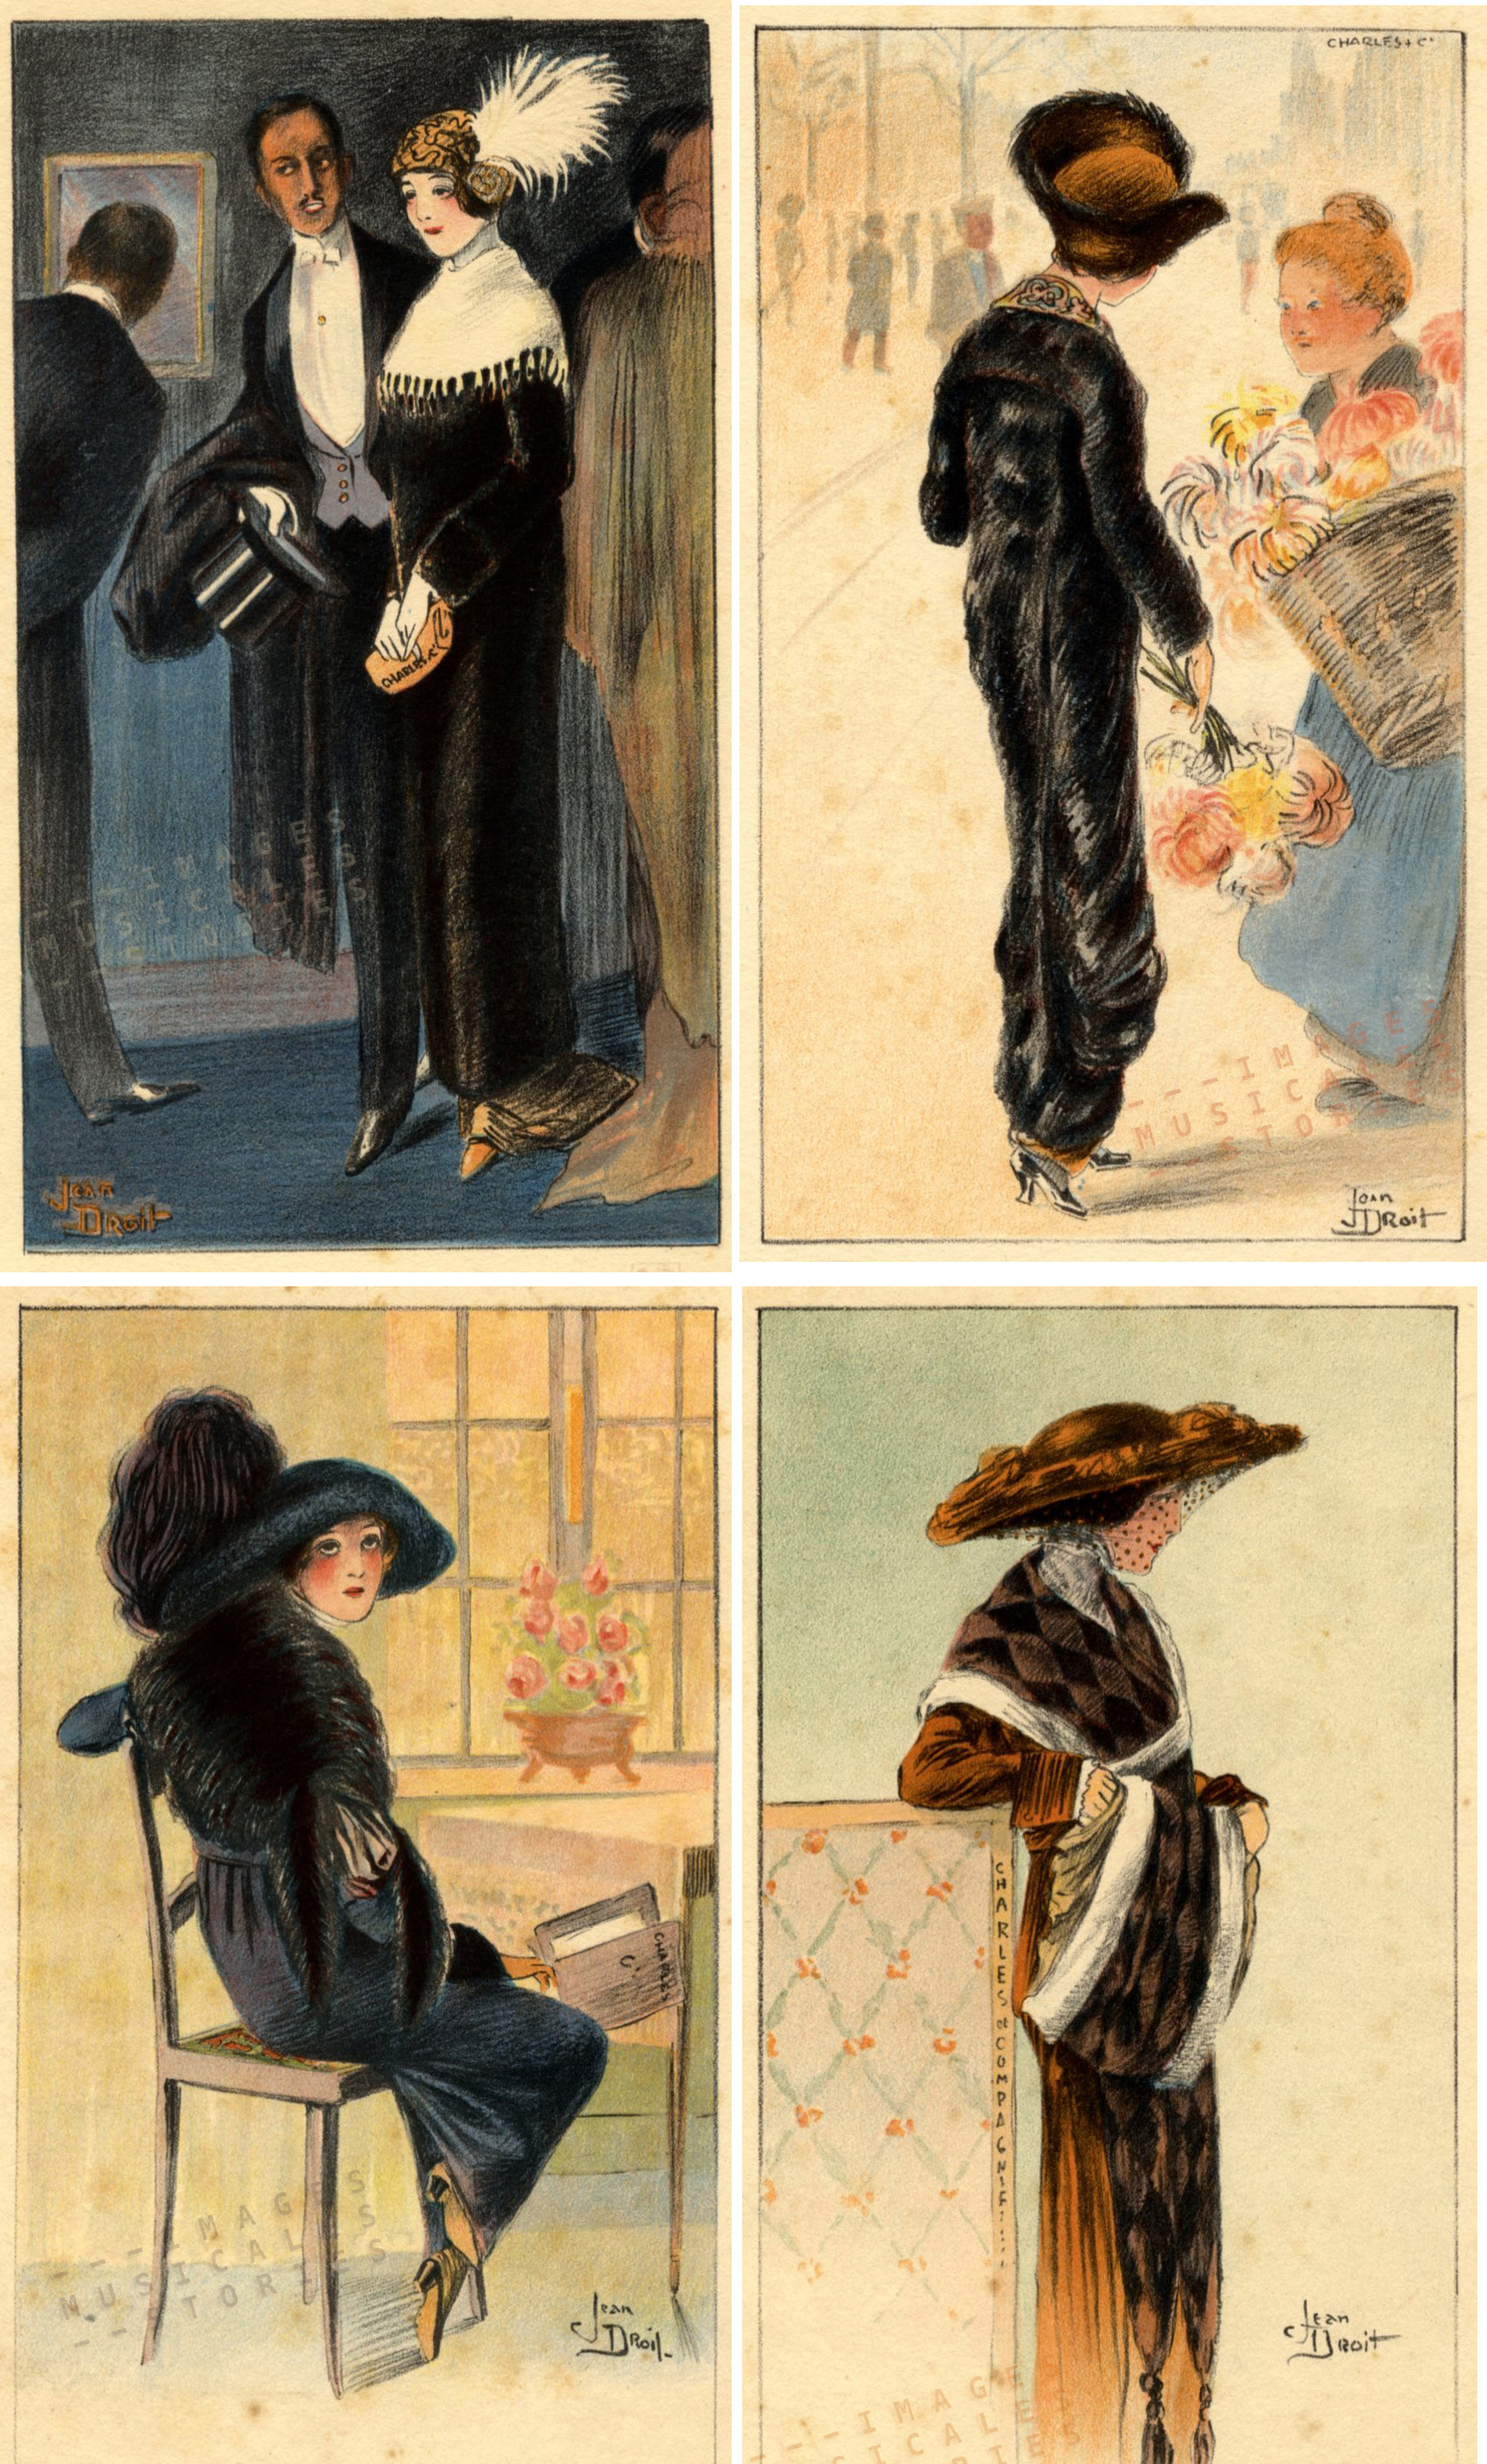 Four catalogue cards for Charles & Cie , illustrated by Jean Droit (Liège, s.d.)